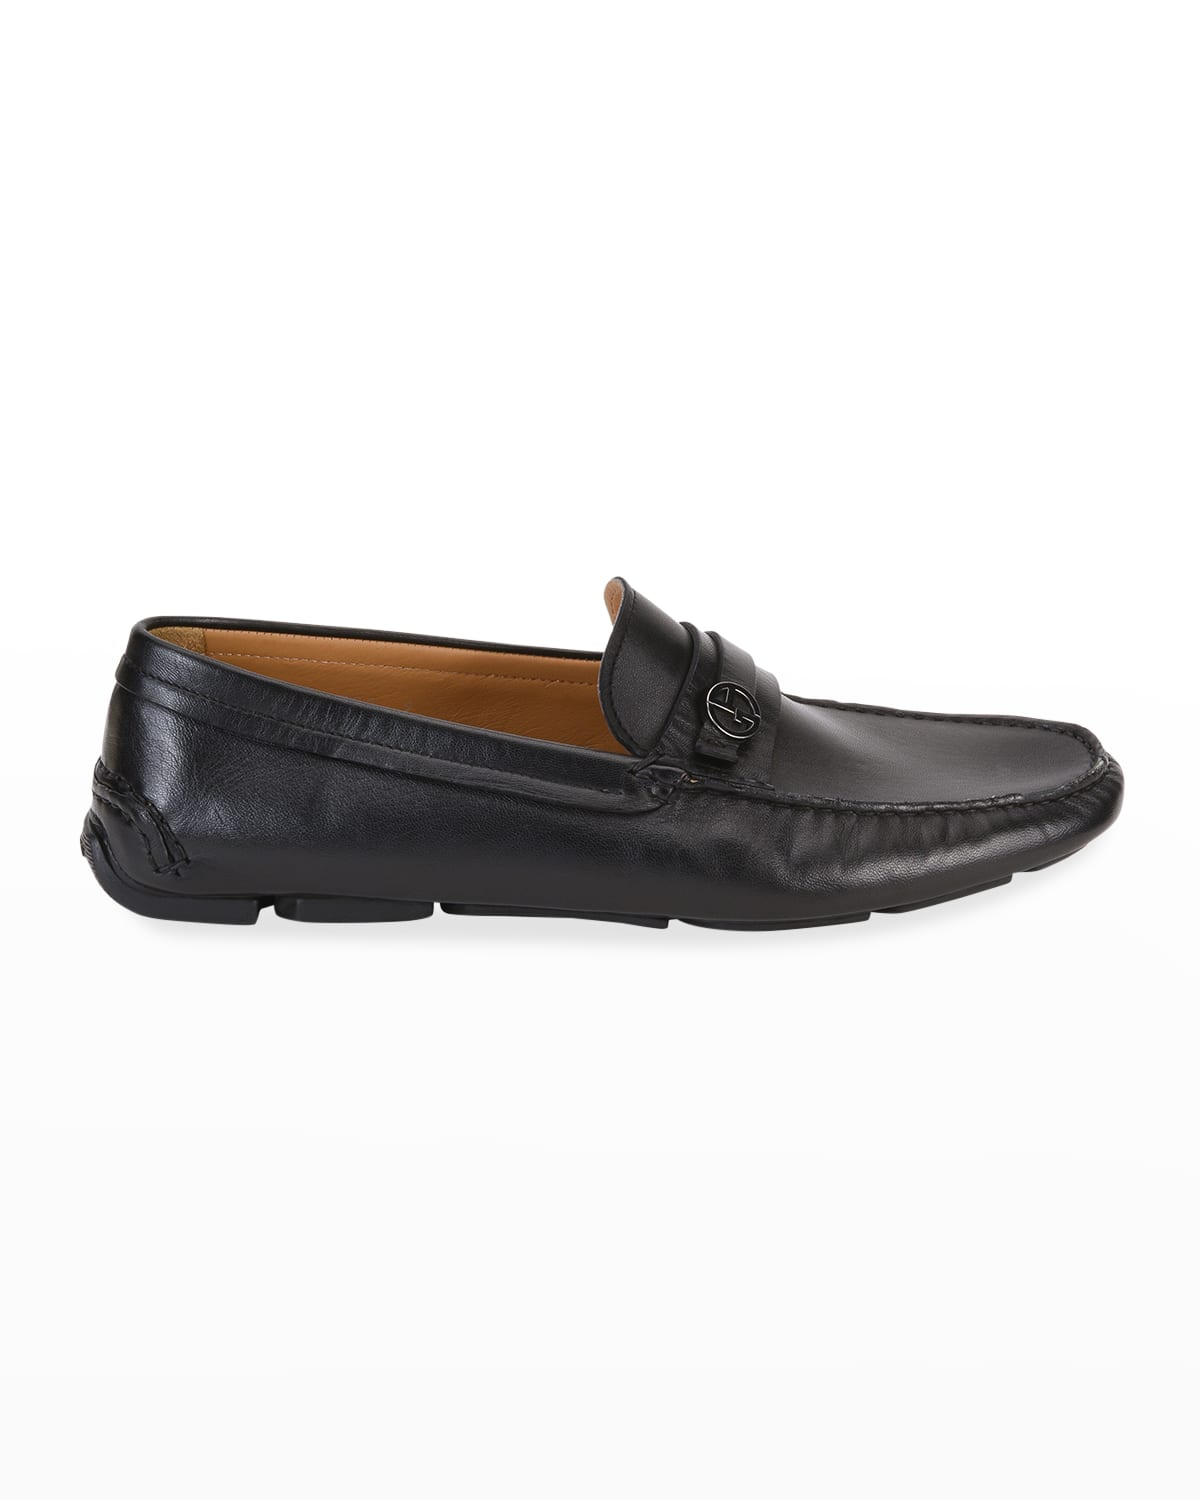 Men's Sheep Leather Drivers